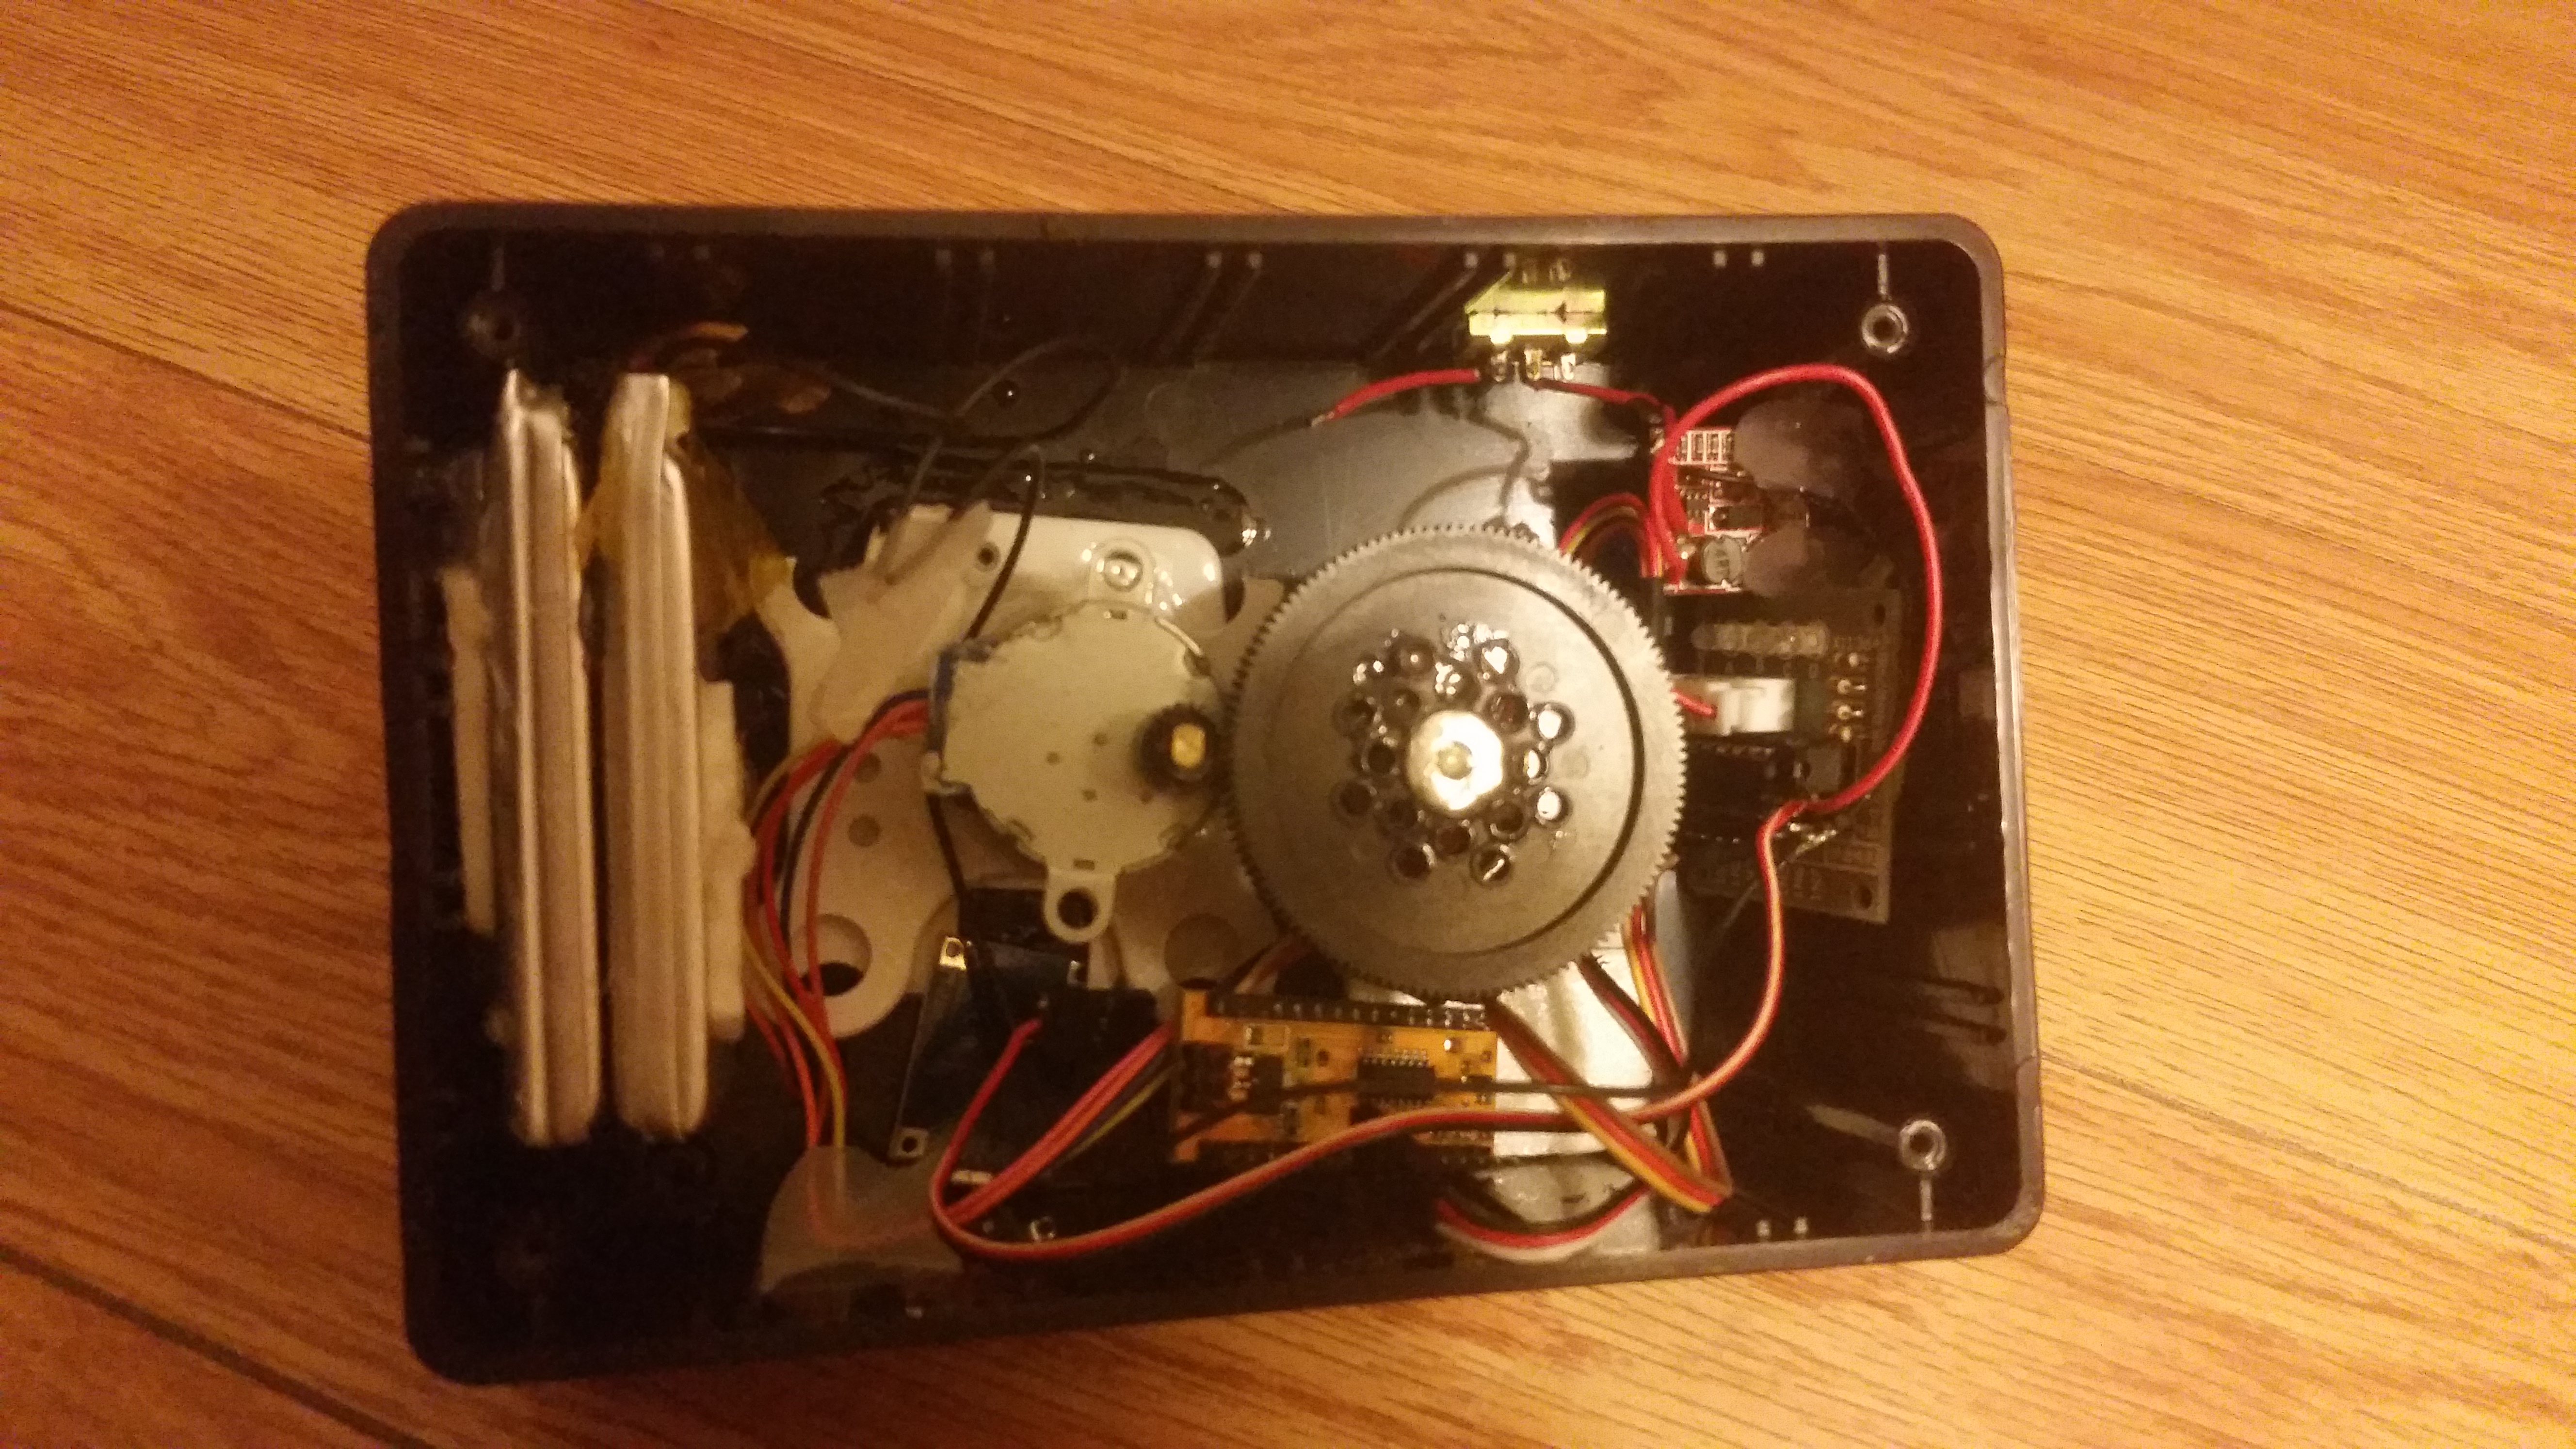 Internals of the time lapse panner, showing gears, stepper motor, battery, and Arduino